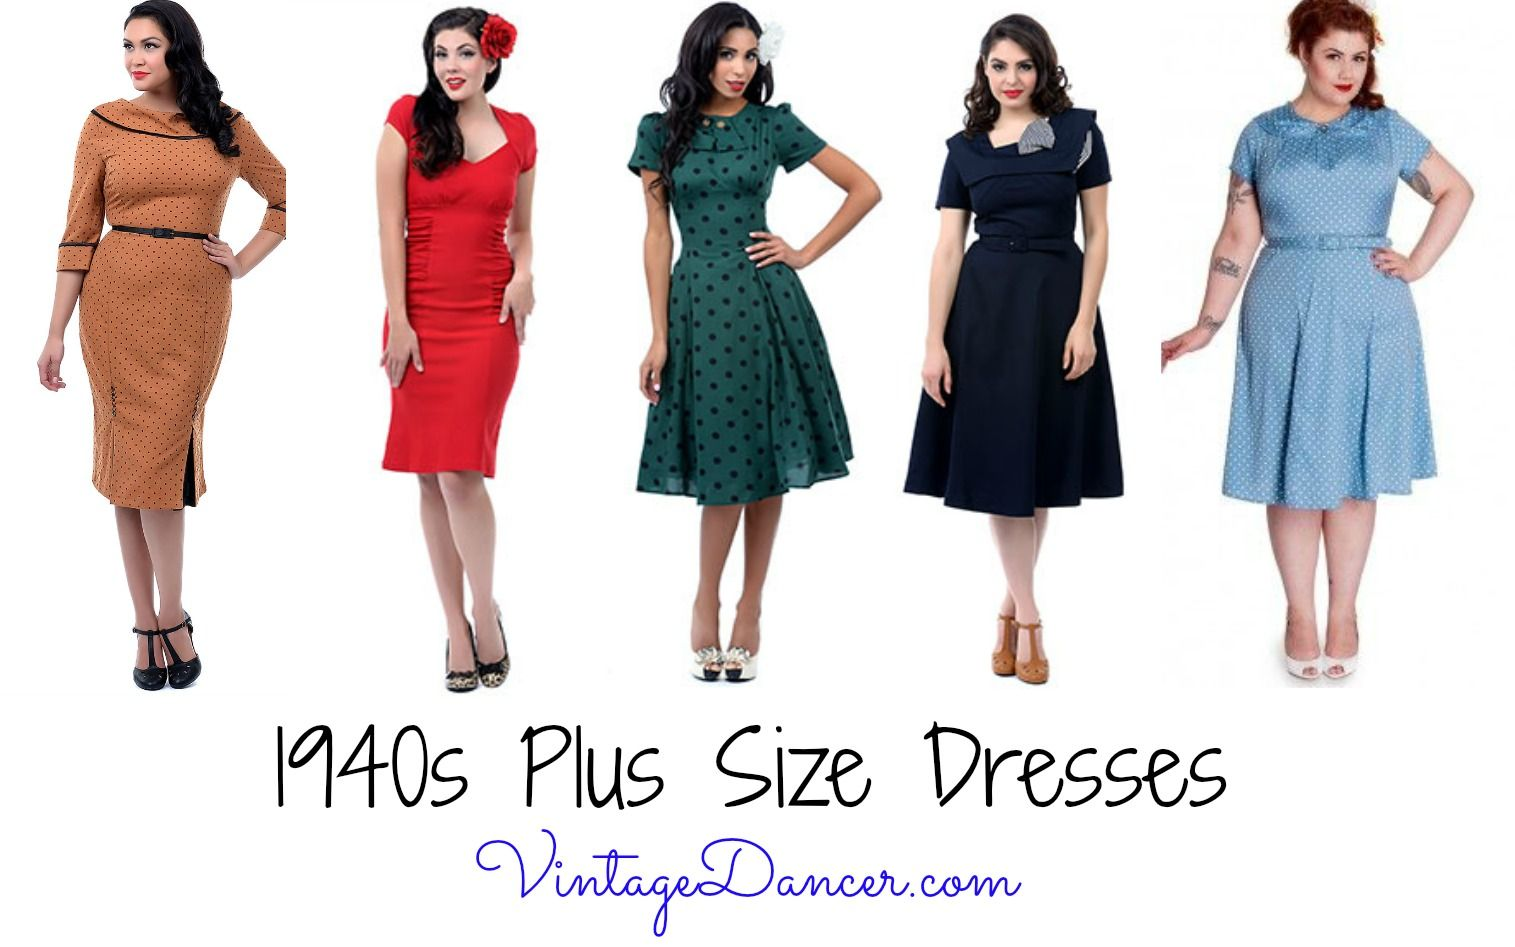 8fc72cc2897 Shop for vintage inspired 1940 s plus size dresses. From classic a-lines  pinup dress styles you will do 1940 s fashion justice in these dresses.